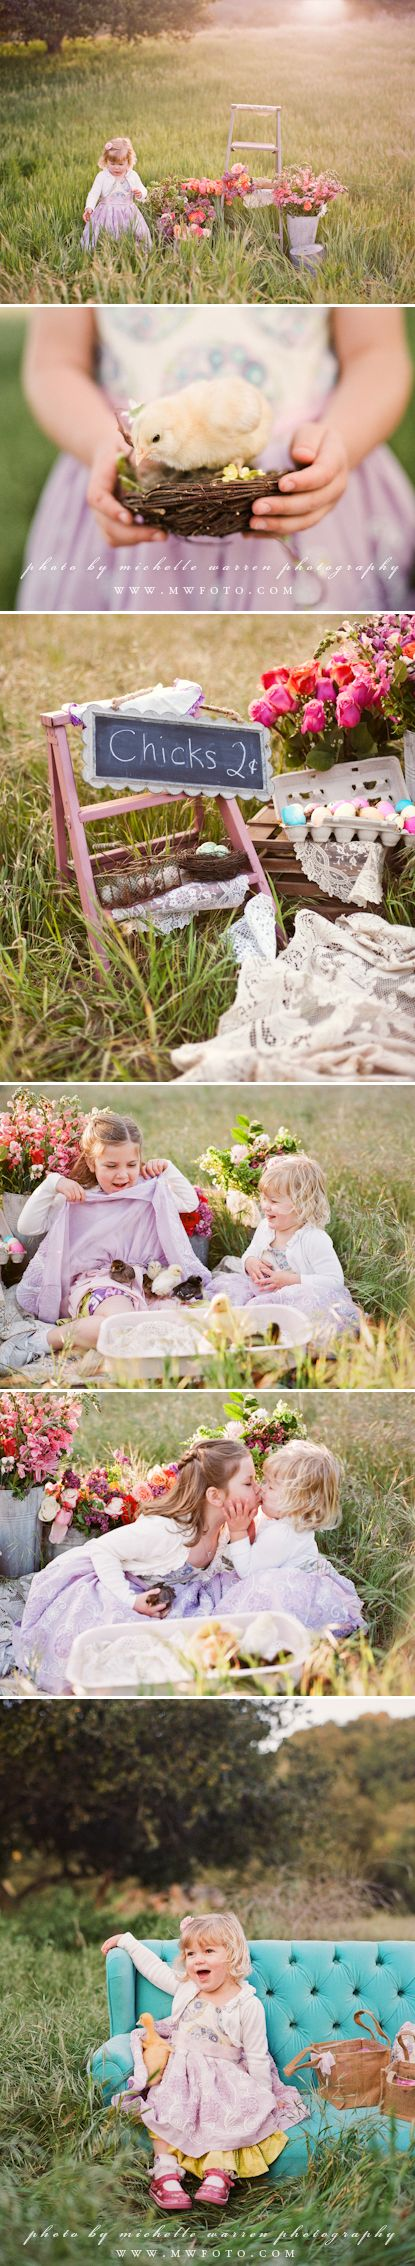 cant wait to have a photoshoot with both my little girls <3 kids photography by Michelle Warren